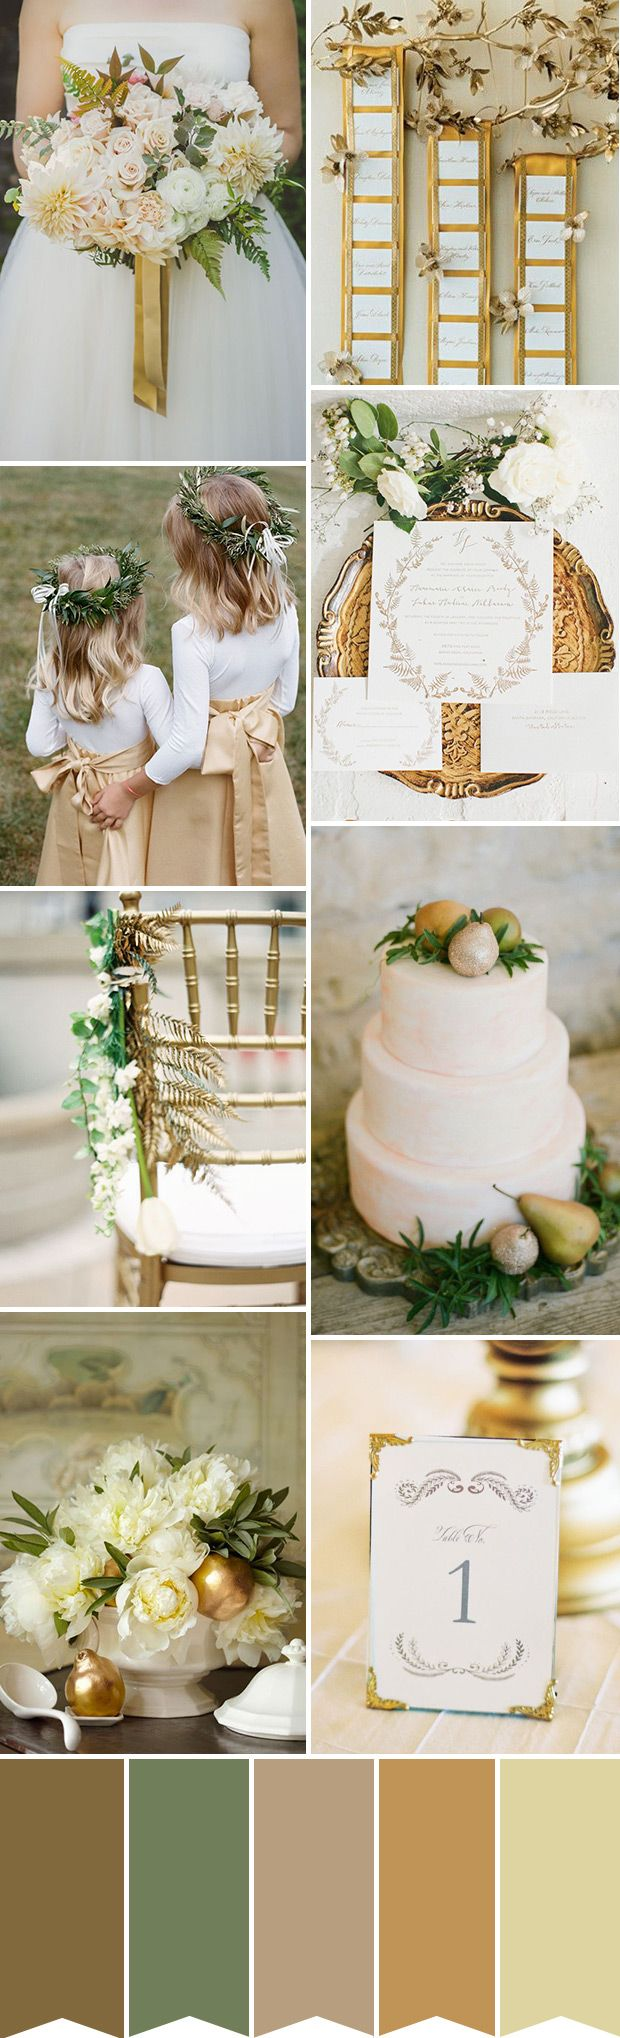 623 best B&B Wedding images on Pinterest | Bridal, Green weddings ...